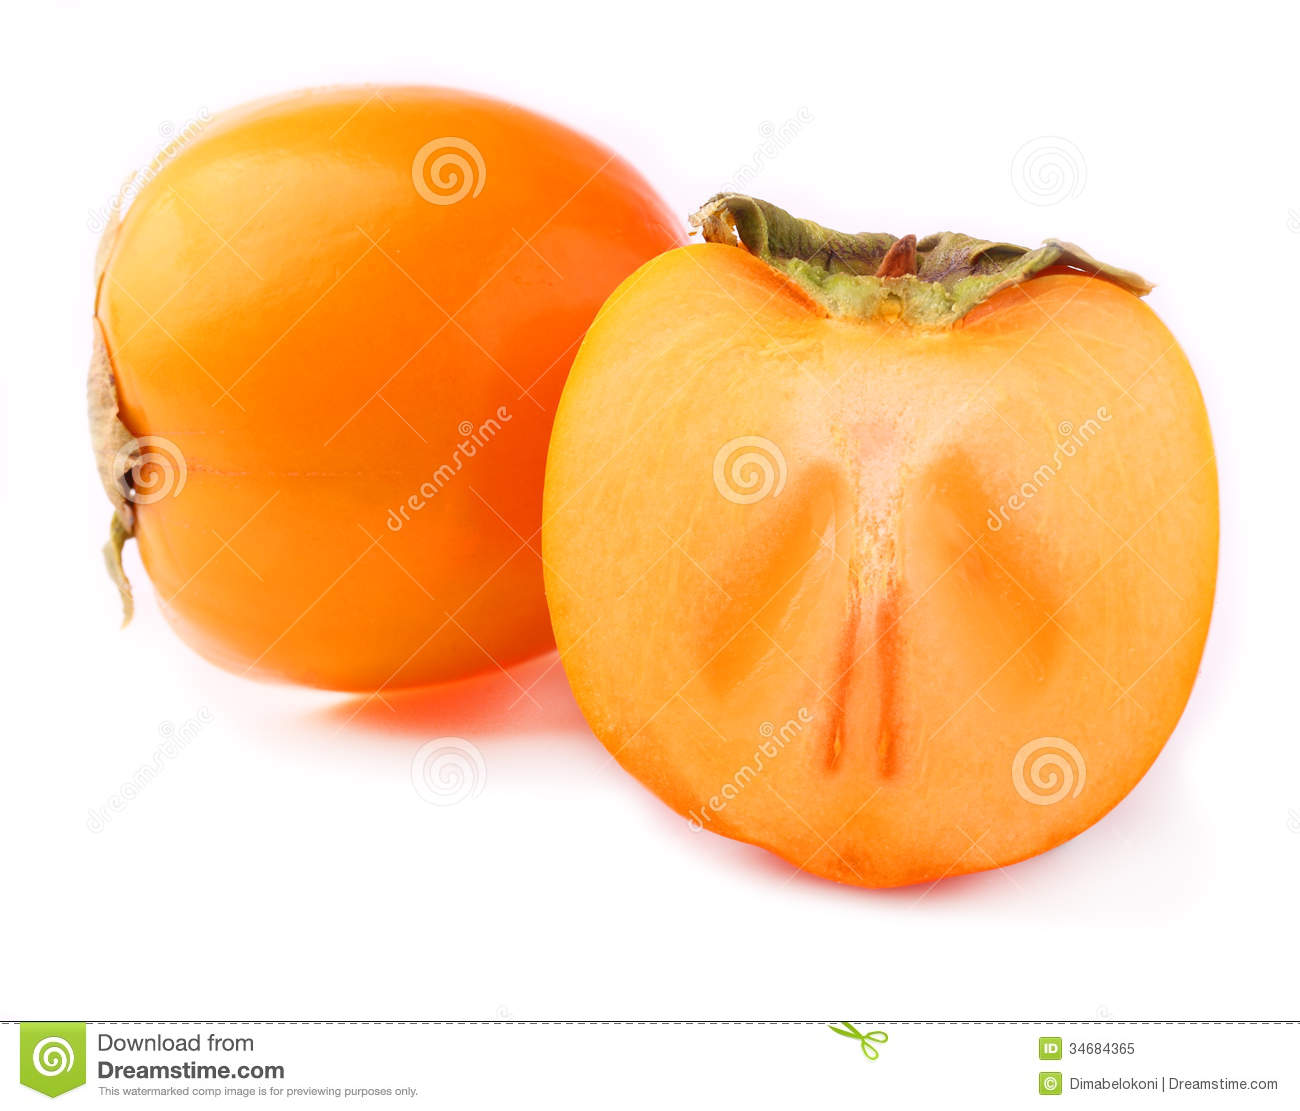 how to eat a persimmon ripe